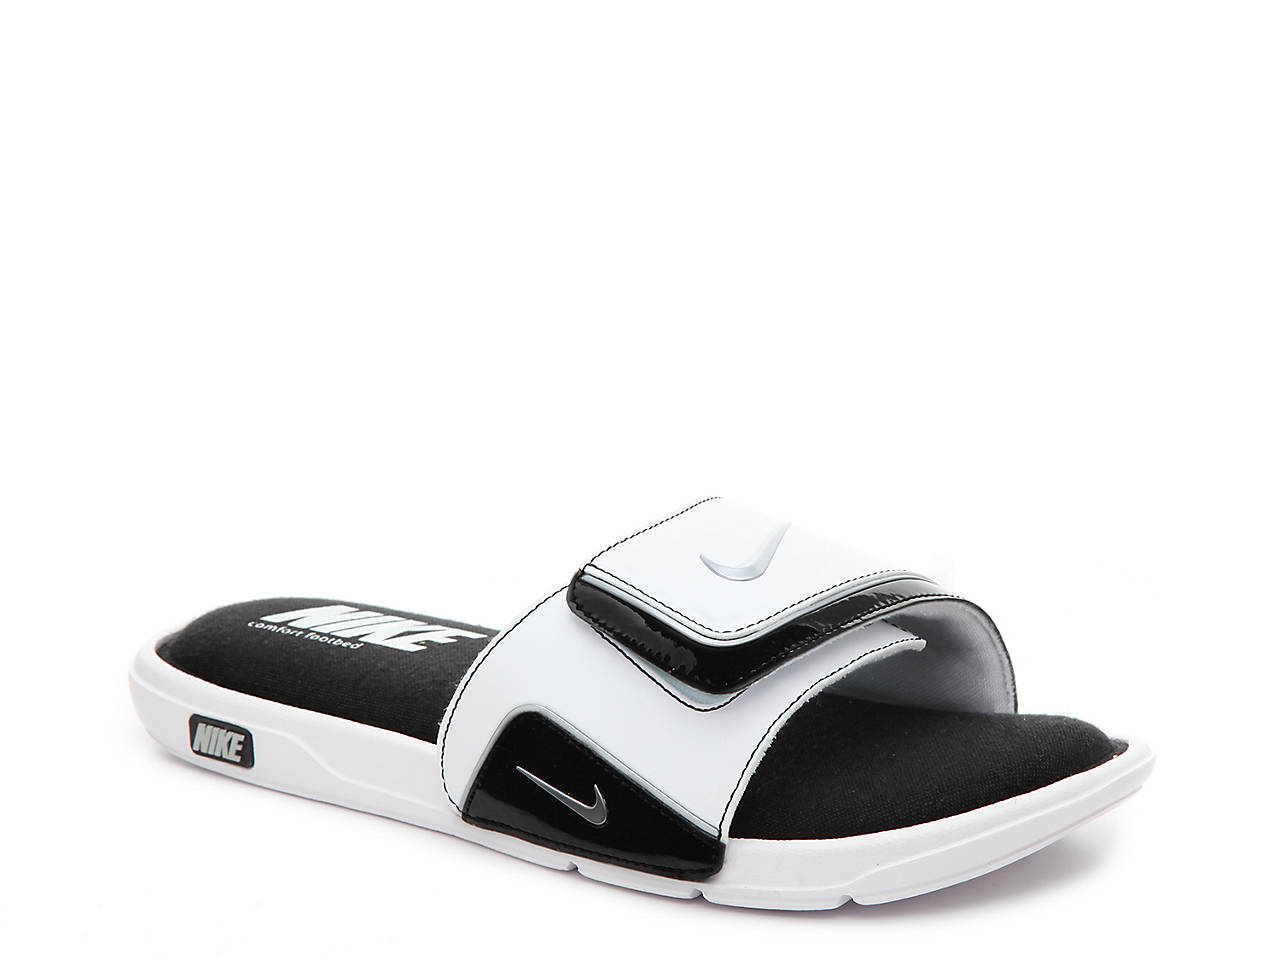 thong nike polarized sandals p academy comfort blackwhite previous fuchsiawhite pinksport comforter slide urban